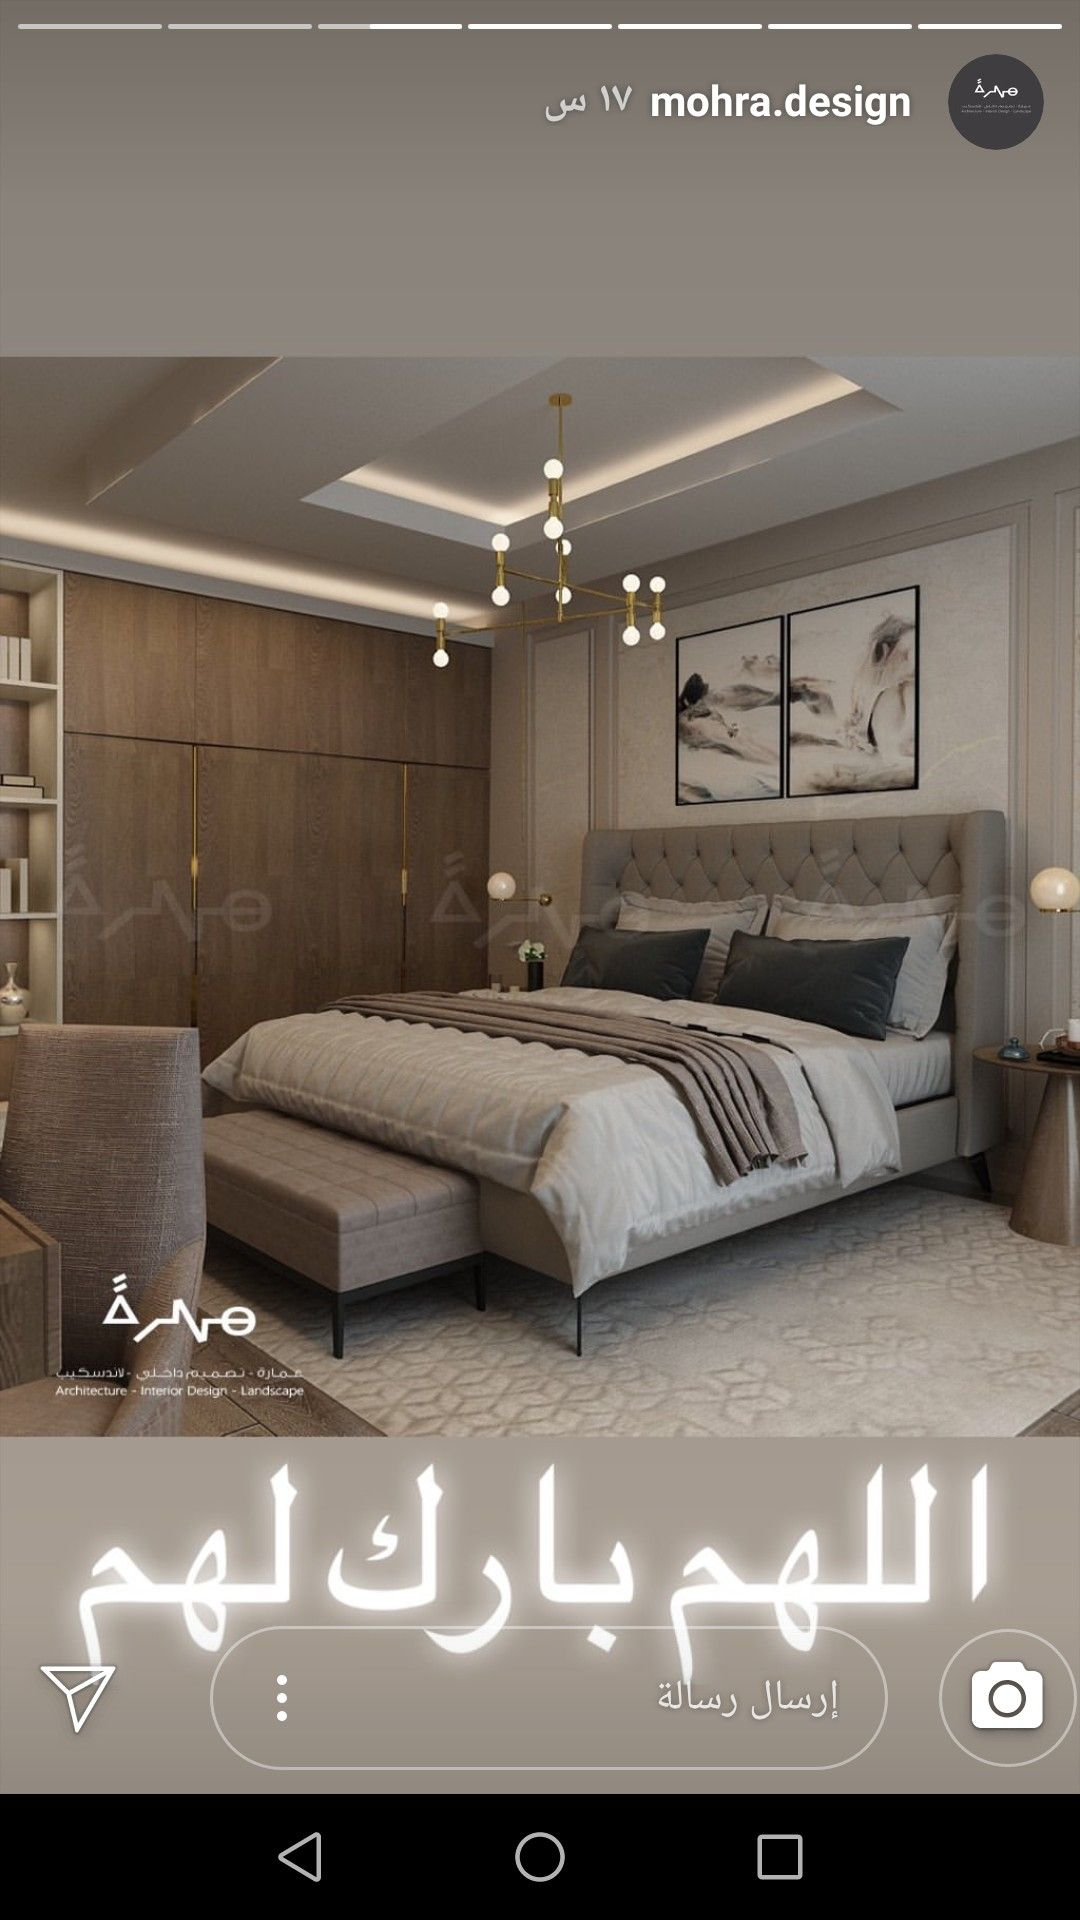 Modern Bedrooms With Modern And Contemporary Decor And Designs Small Living Room Decor Modern Bedroom Modern Bedroom Decor